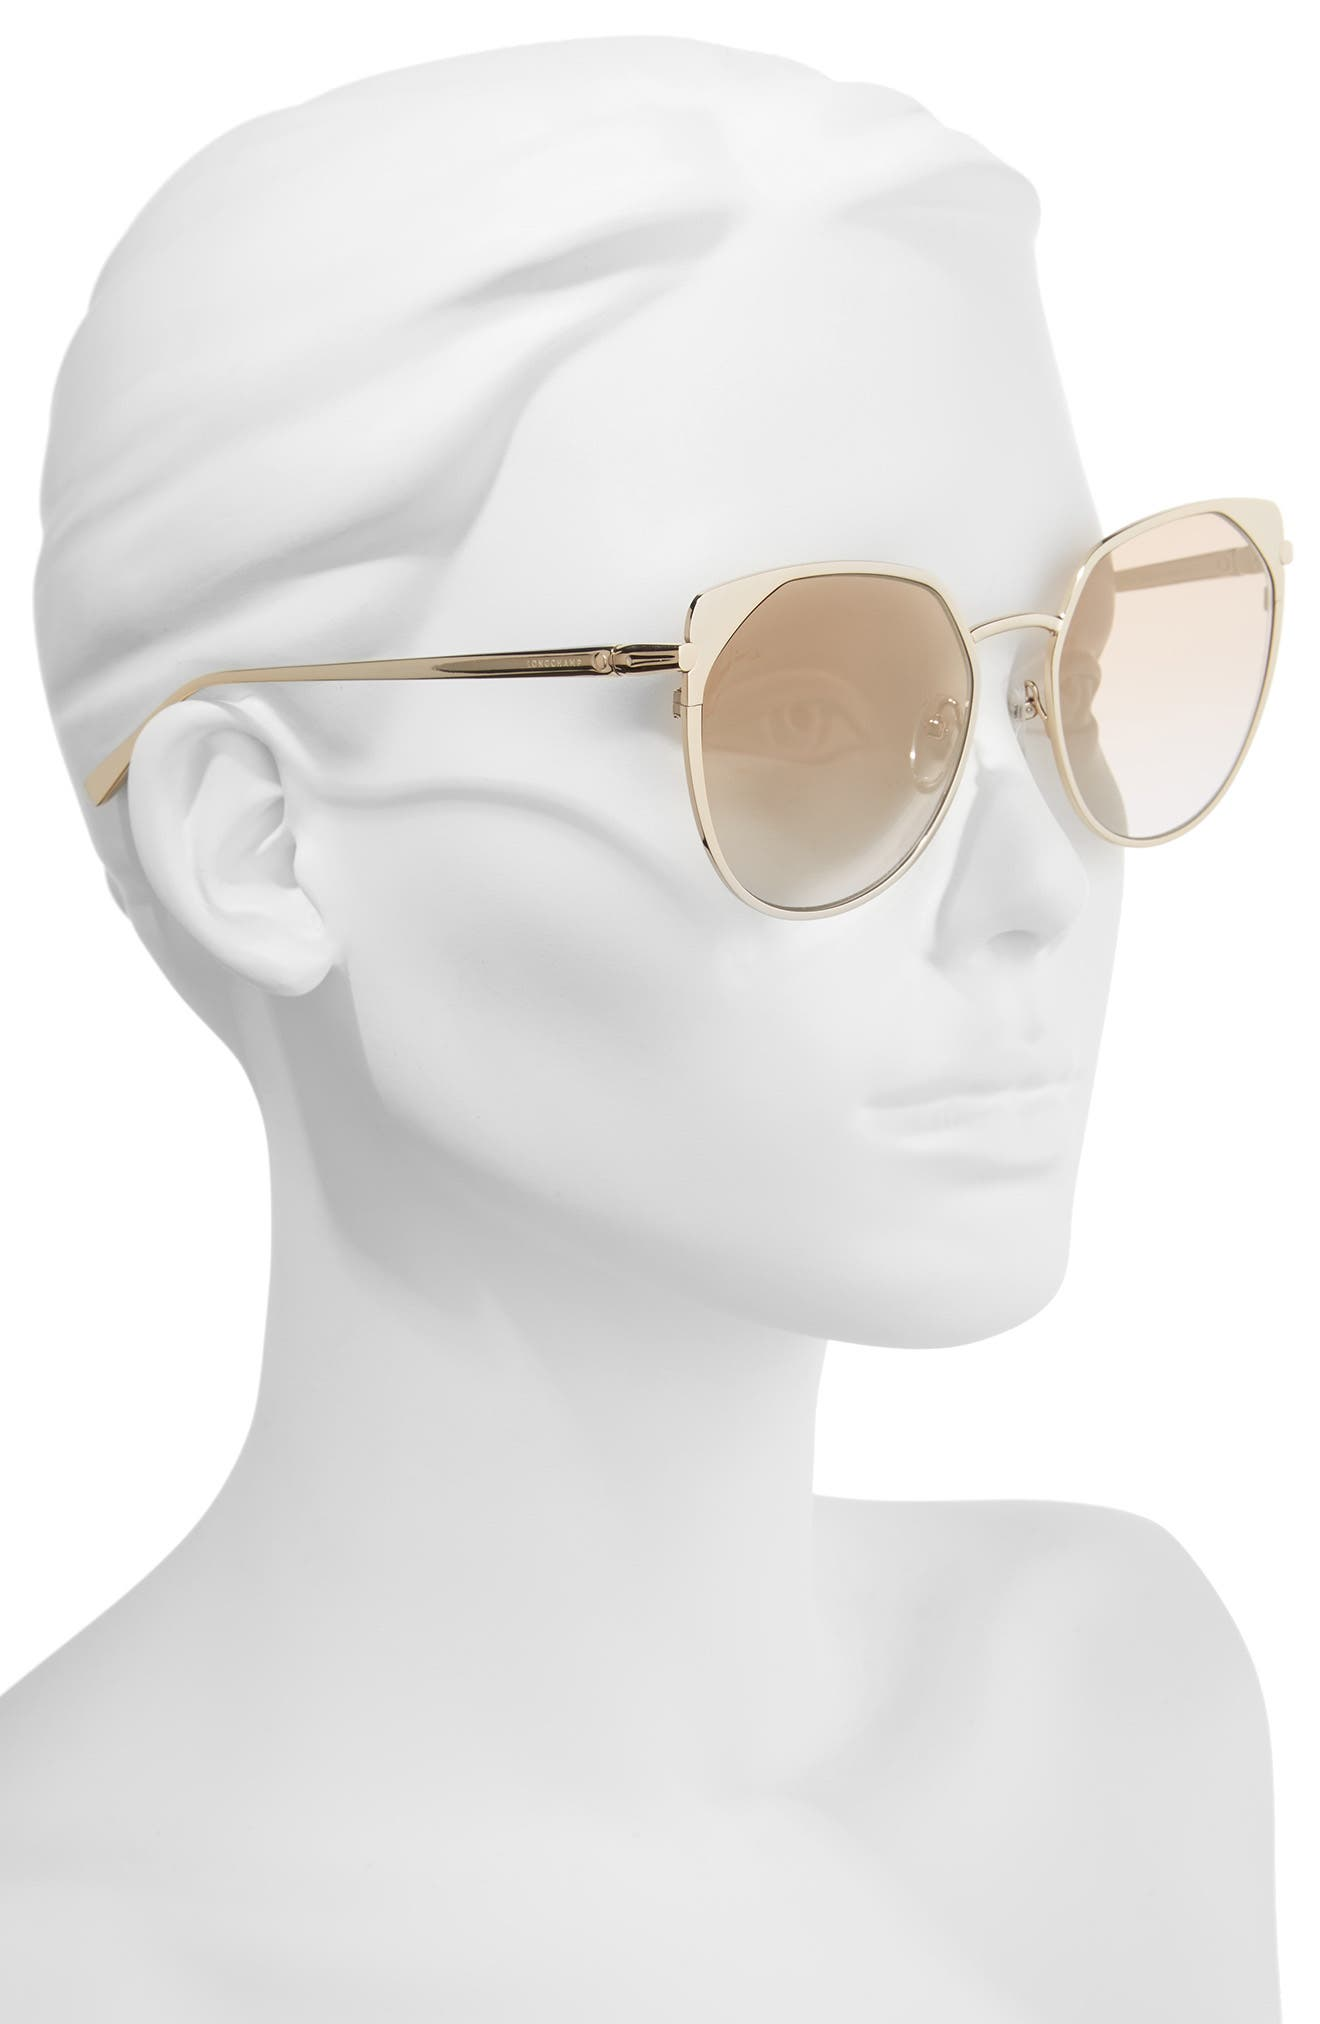 58mm Rounded Cat Eye Sunglasses,                             Alternate thumbnail 2, color,                             GOLD